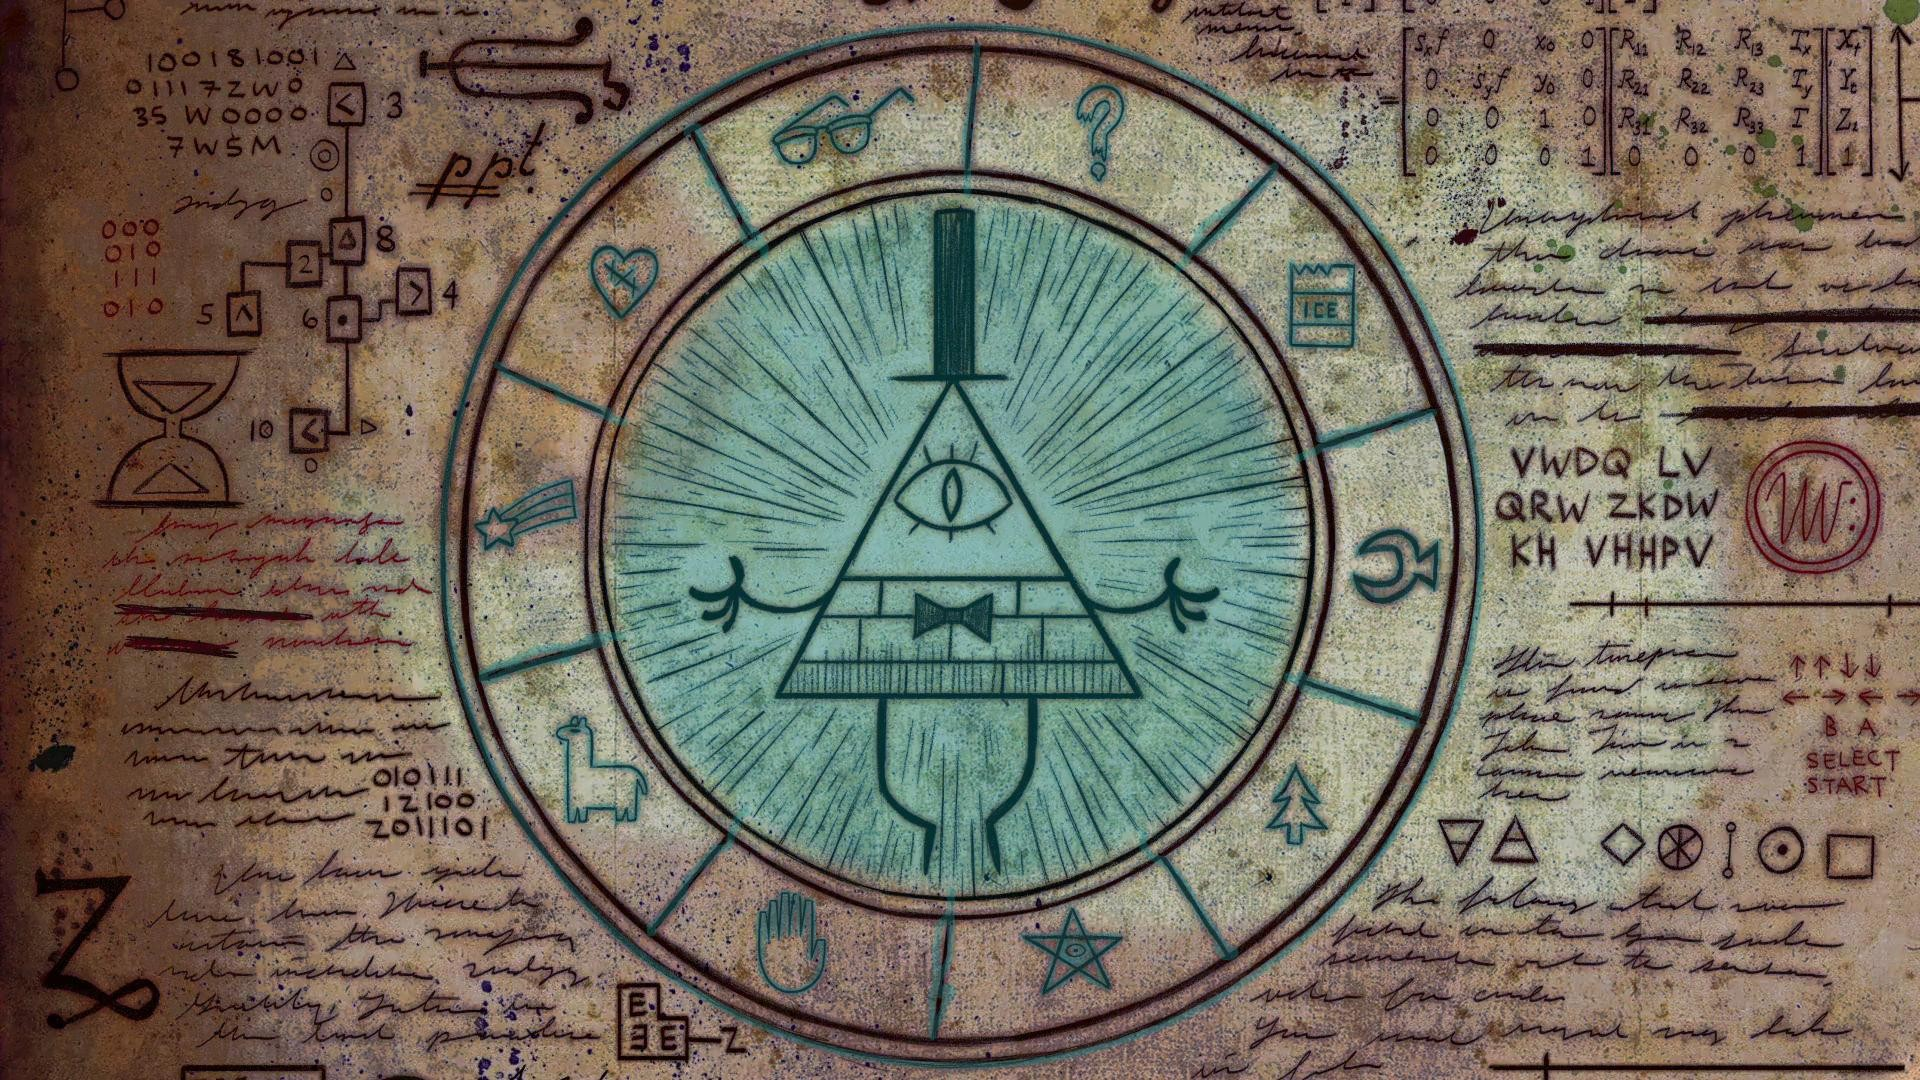 Bill Cipher wallpaper ·â' Download free awesome full HD backgrounds